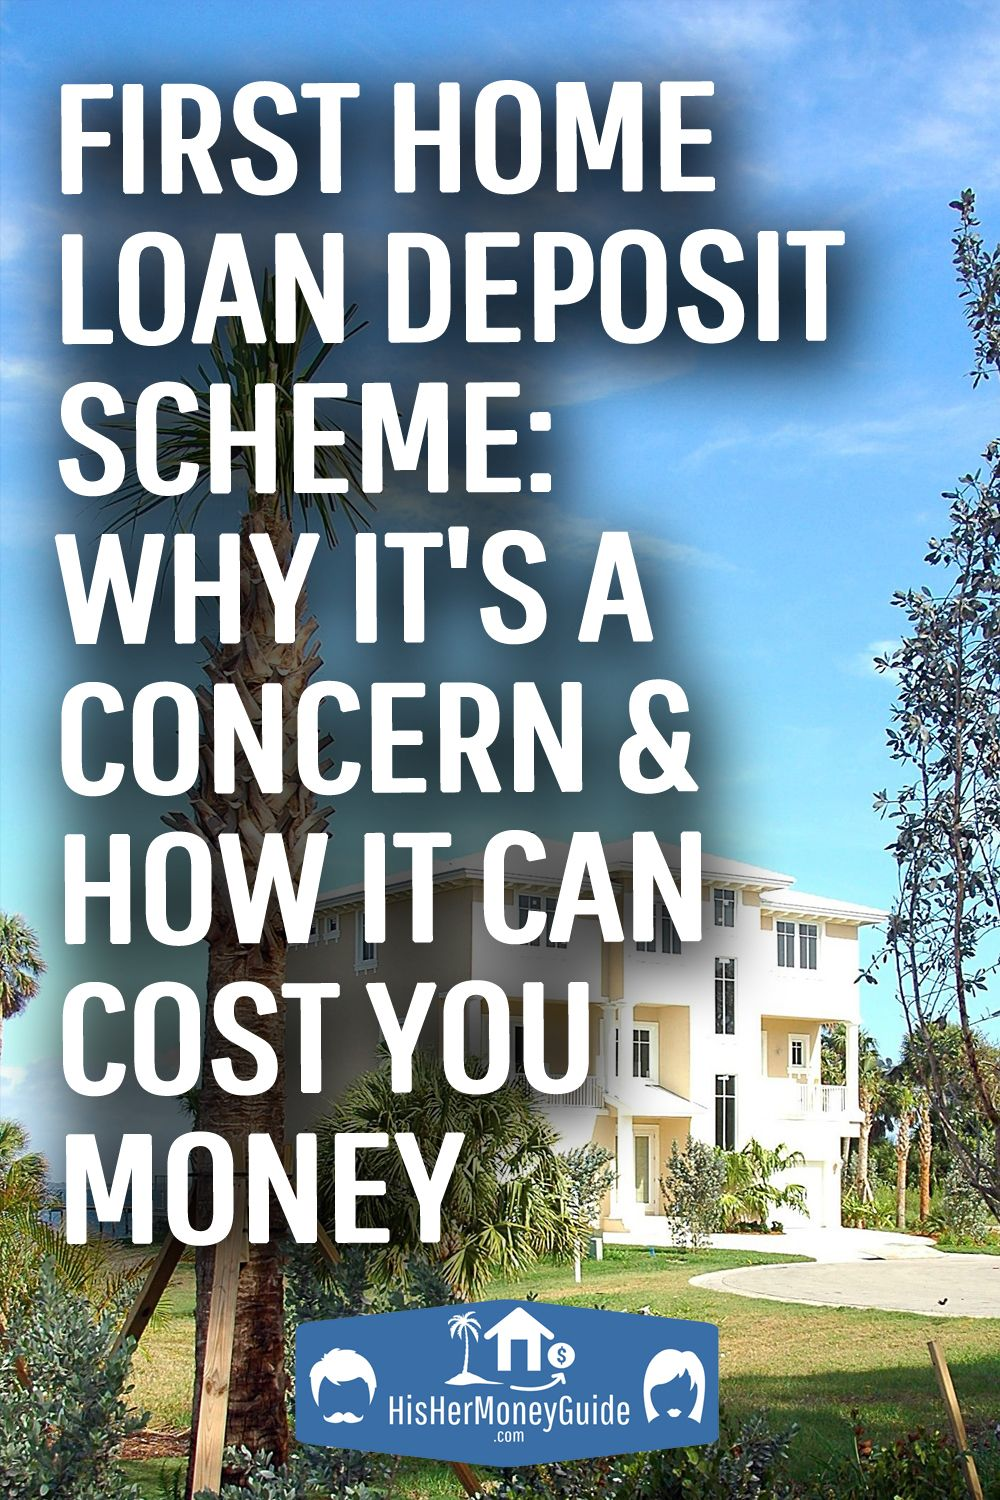 The 5 First Home Loan Deposit Scheme Worries Me Hishermoneyguide In 2020 Personal Financial Planning Retirement Lifestyle Investment Tips